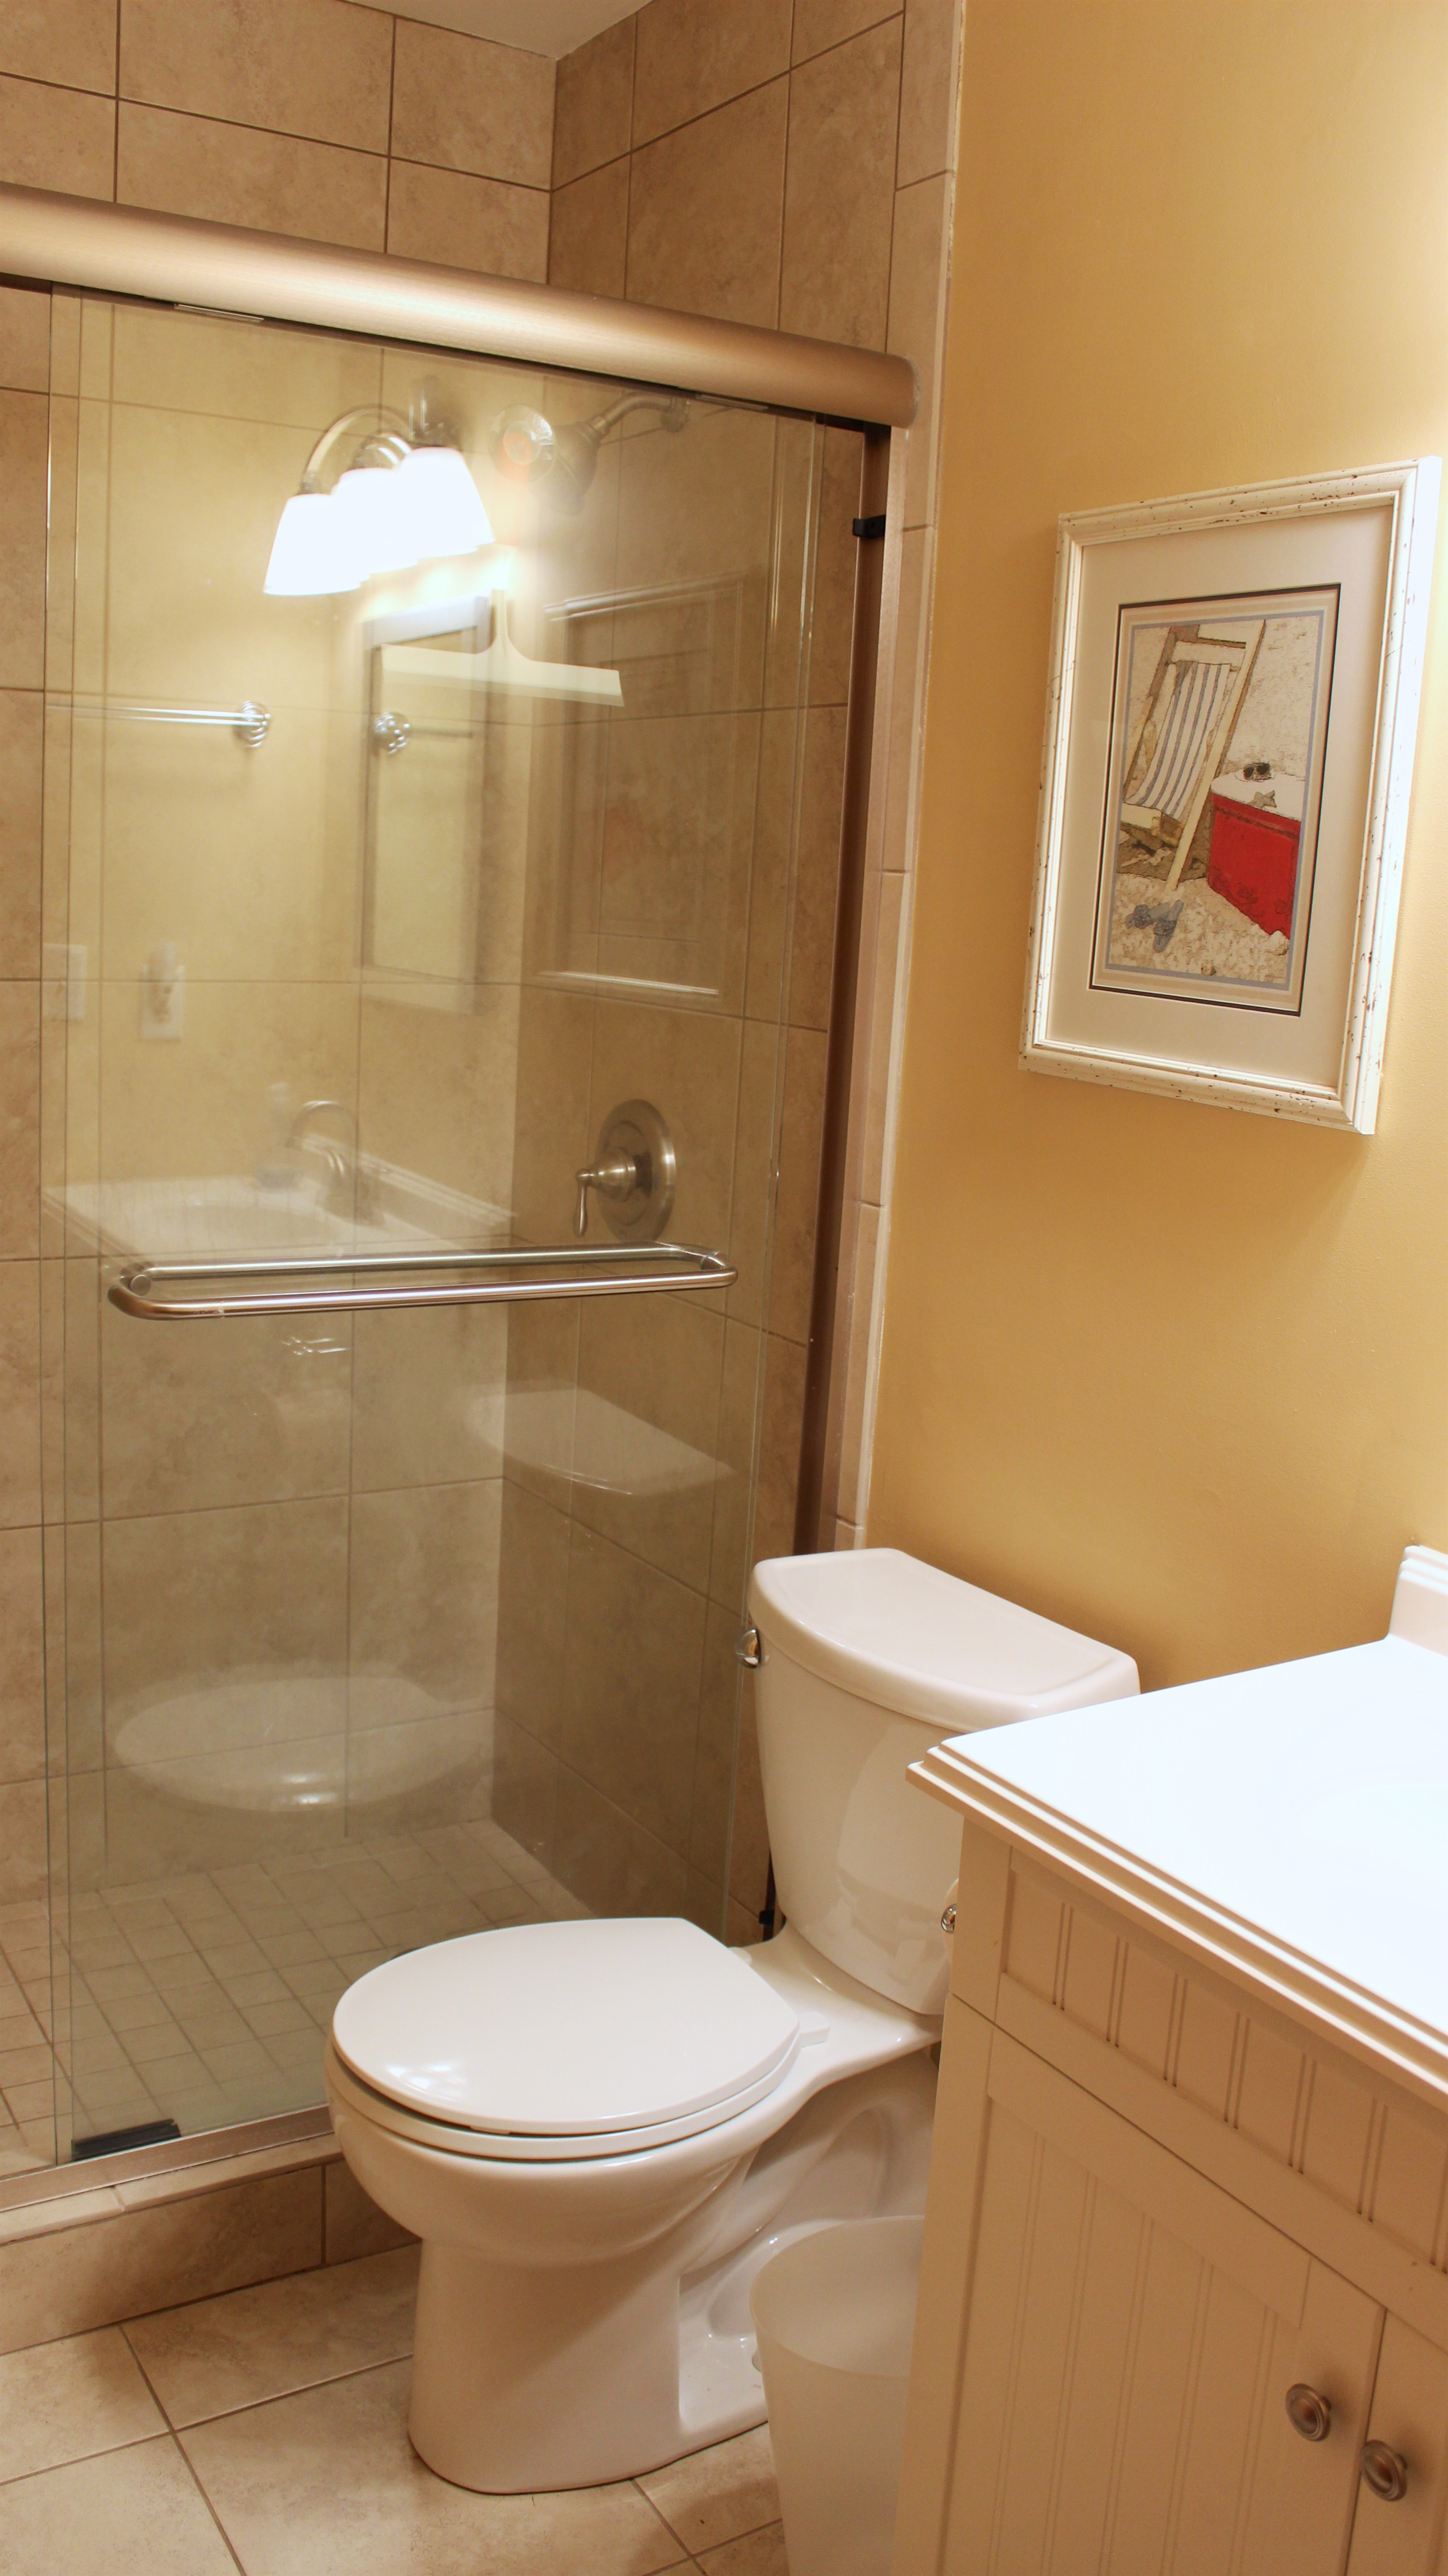 Off the hall leading to the bedrooms is a full bath with a tiled shower.